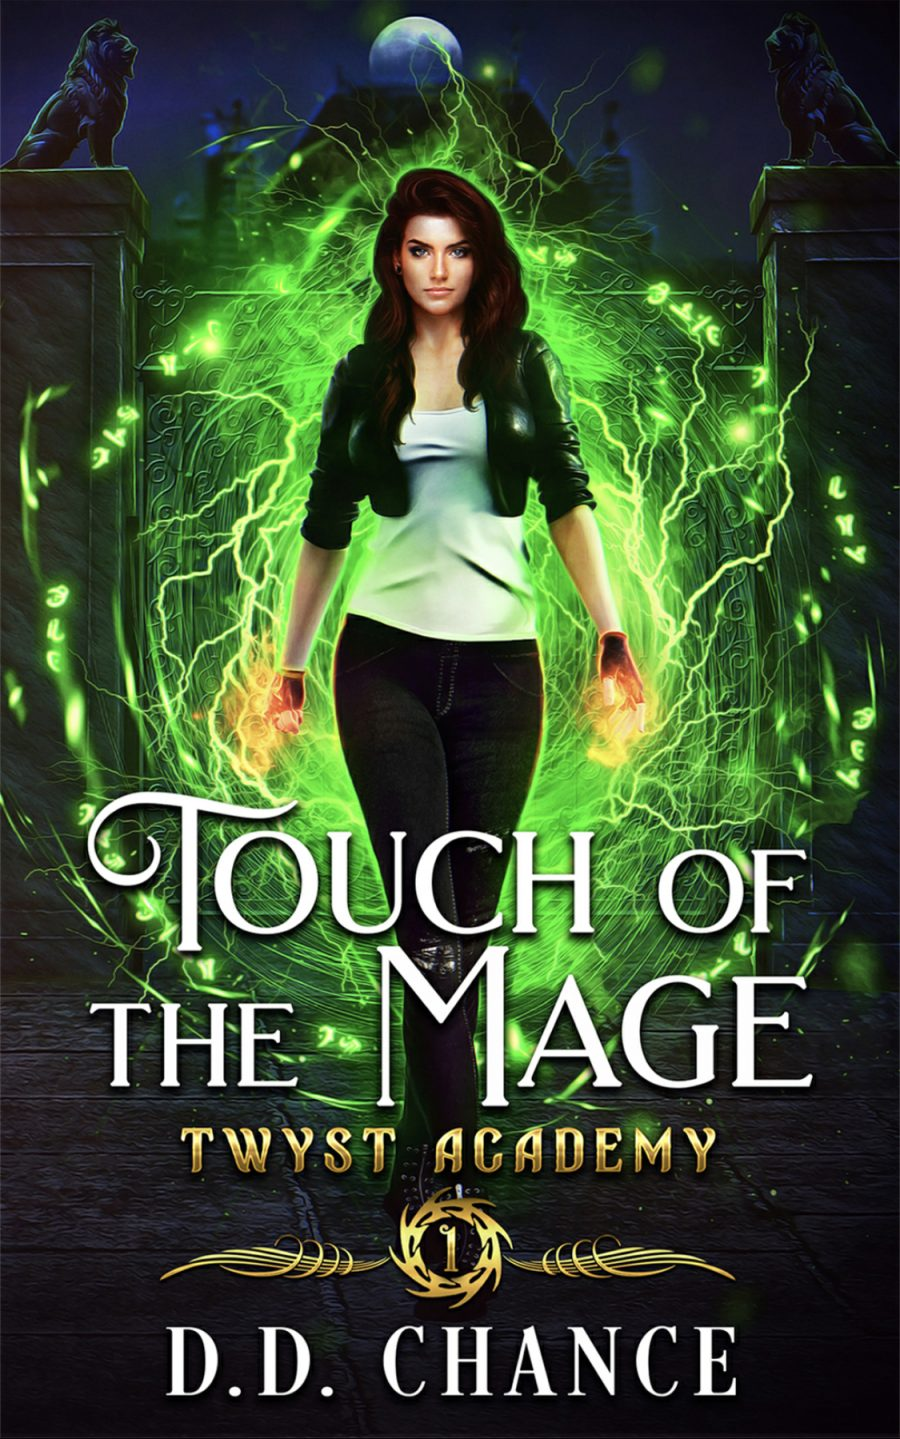 Touch of The Mage (Twyst Academy - Book 1) by D.D. Chance - A Book Review #BookReview #SlowBurn #RH #Academy #University #NA #PNR #4Stars #KindleUnlimited #KU